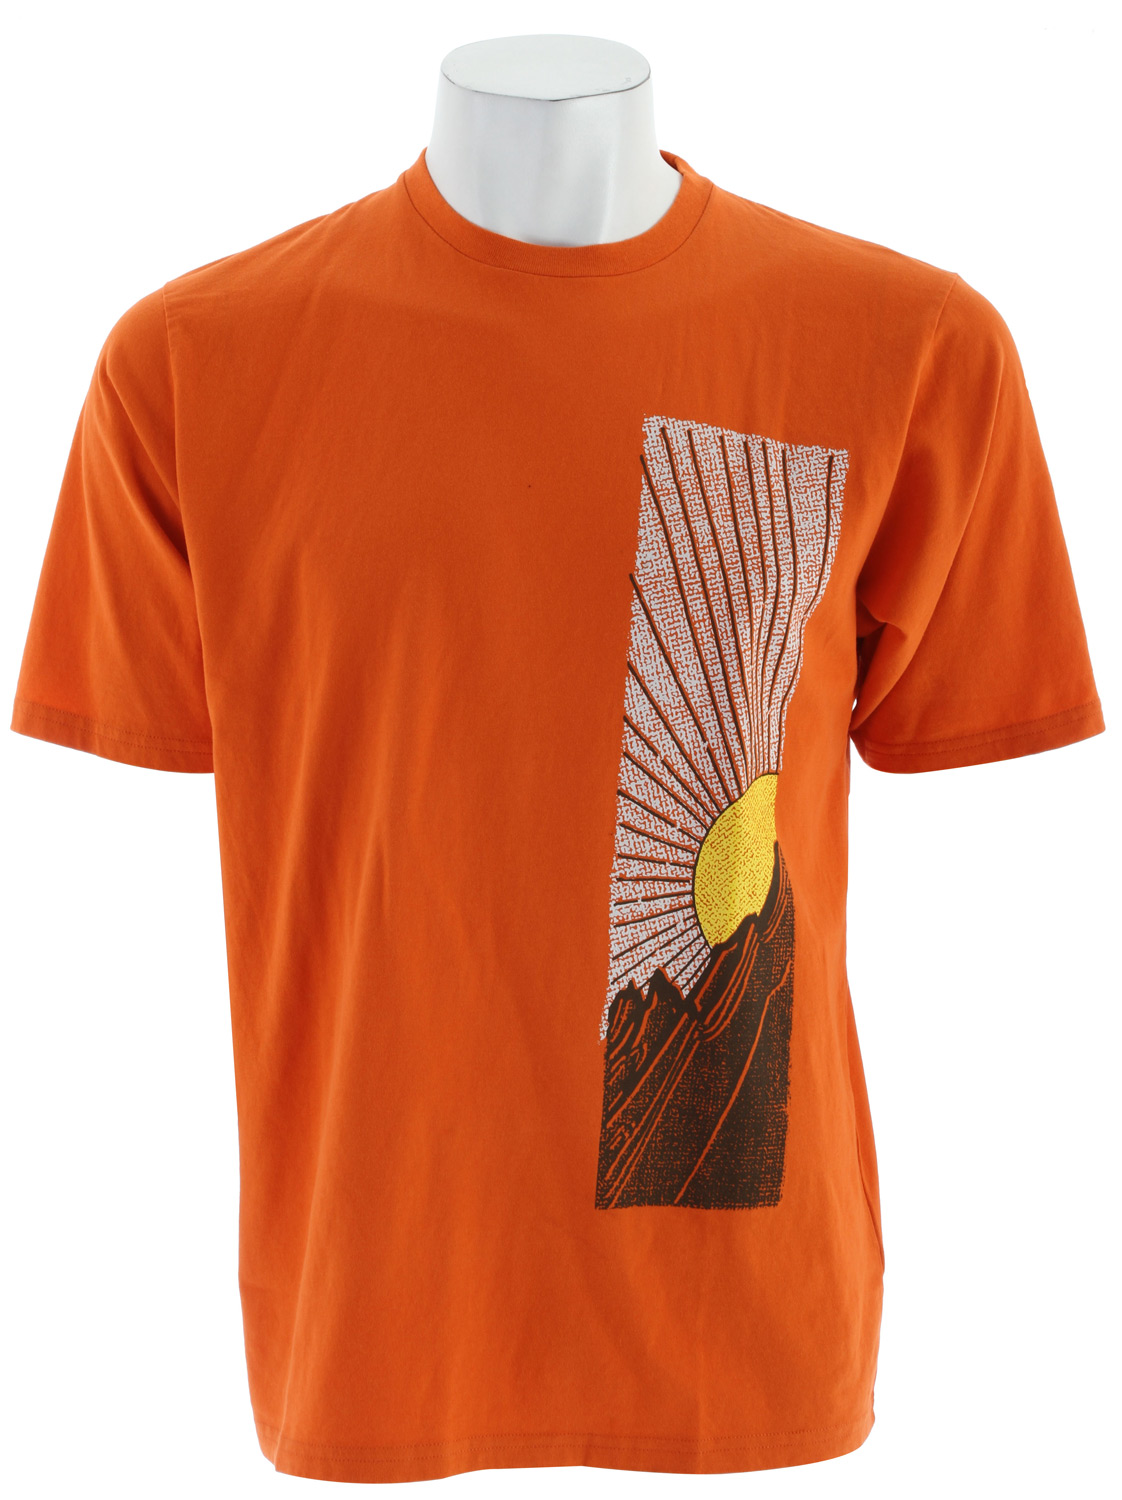 Key Features of The The North Face Sun Junction T-Shirt: Regular Fit Crew Neck Short Sleeve Fabric: 100% sueded cotton jersey Comfortable, lightweight, easy-care fabric 1x1 rib on collar Graphic in water-based print at chest - $24.95